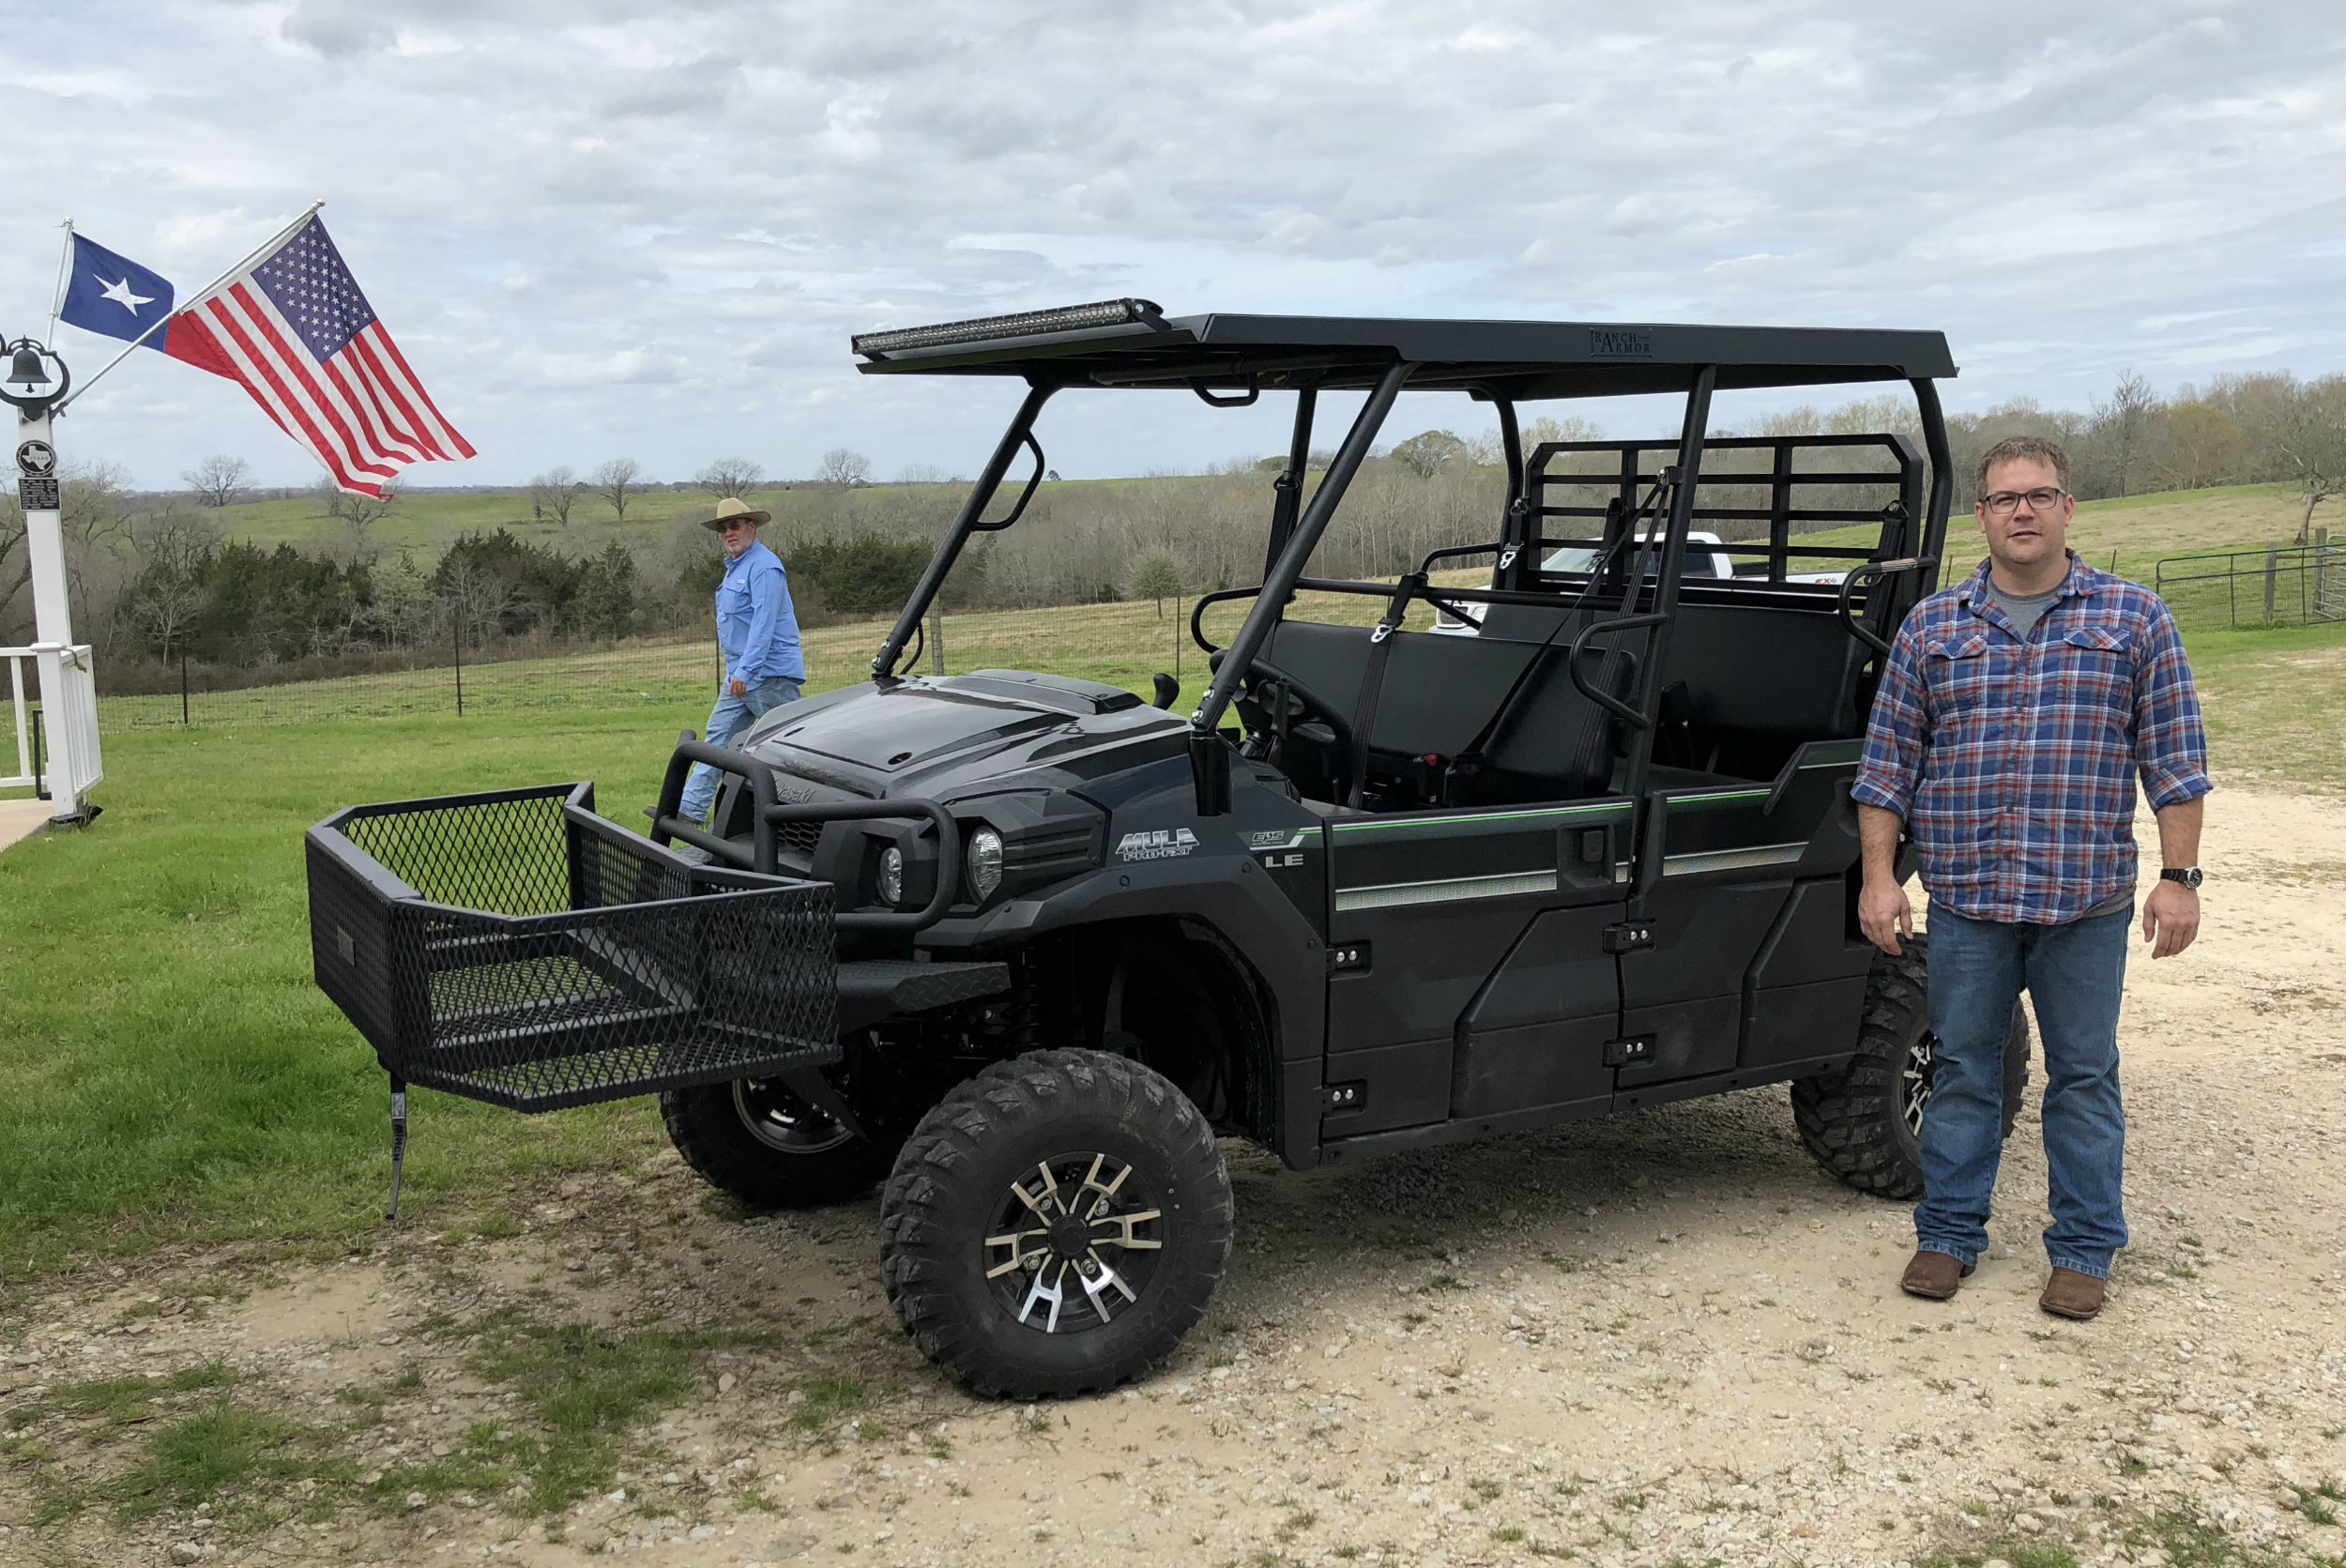 kawasaki-mule-pro-fxt-lee-rush-ranch-armor-metal-top-and-front-hitch-basket-outfit-lift.jpg